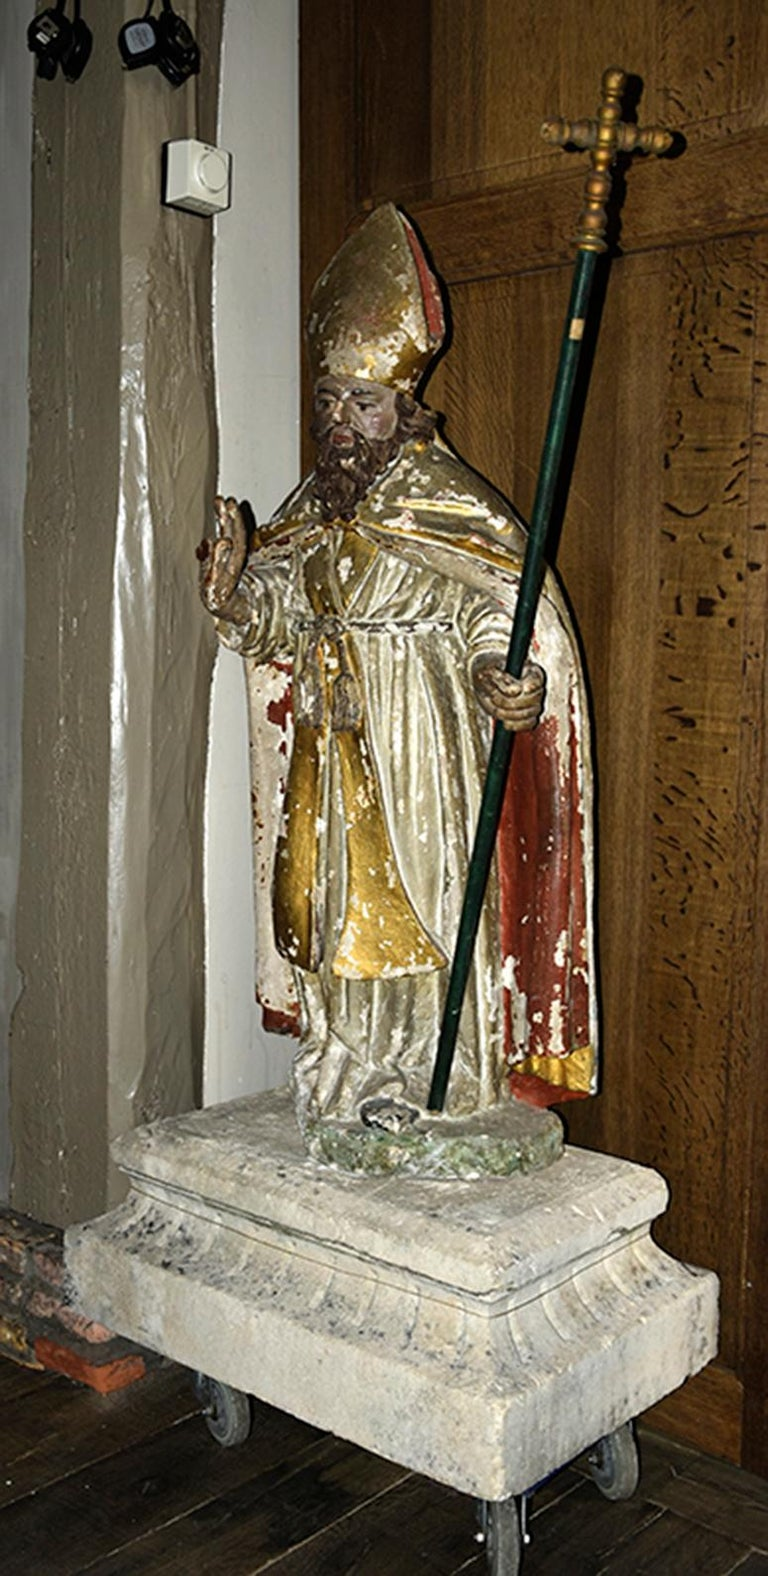 Hand-Carved Antique Statue of Holy Man from the 17th Century For Sale